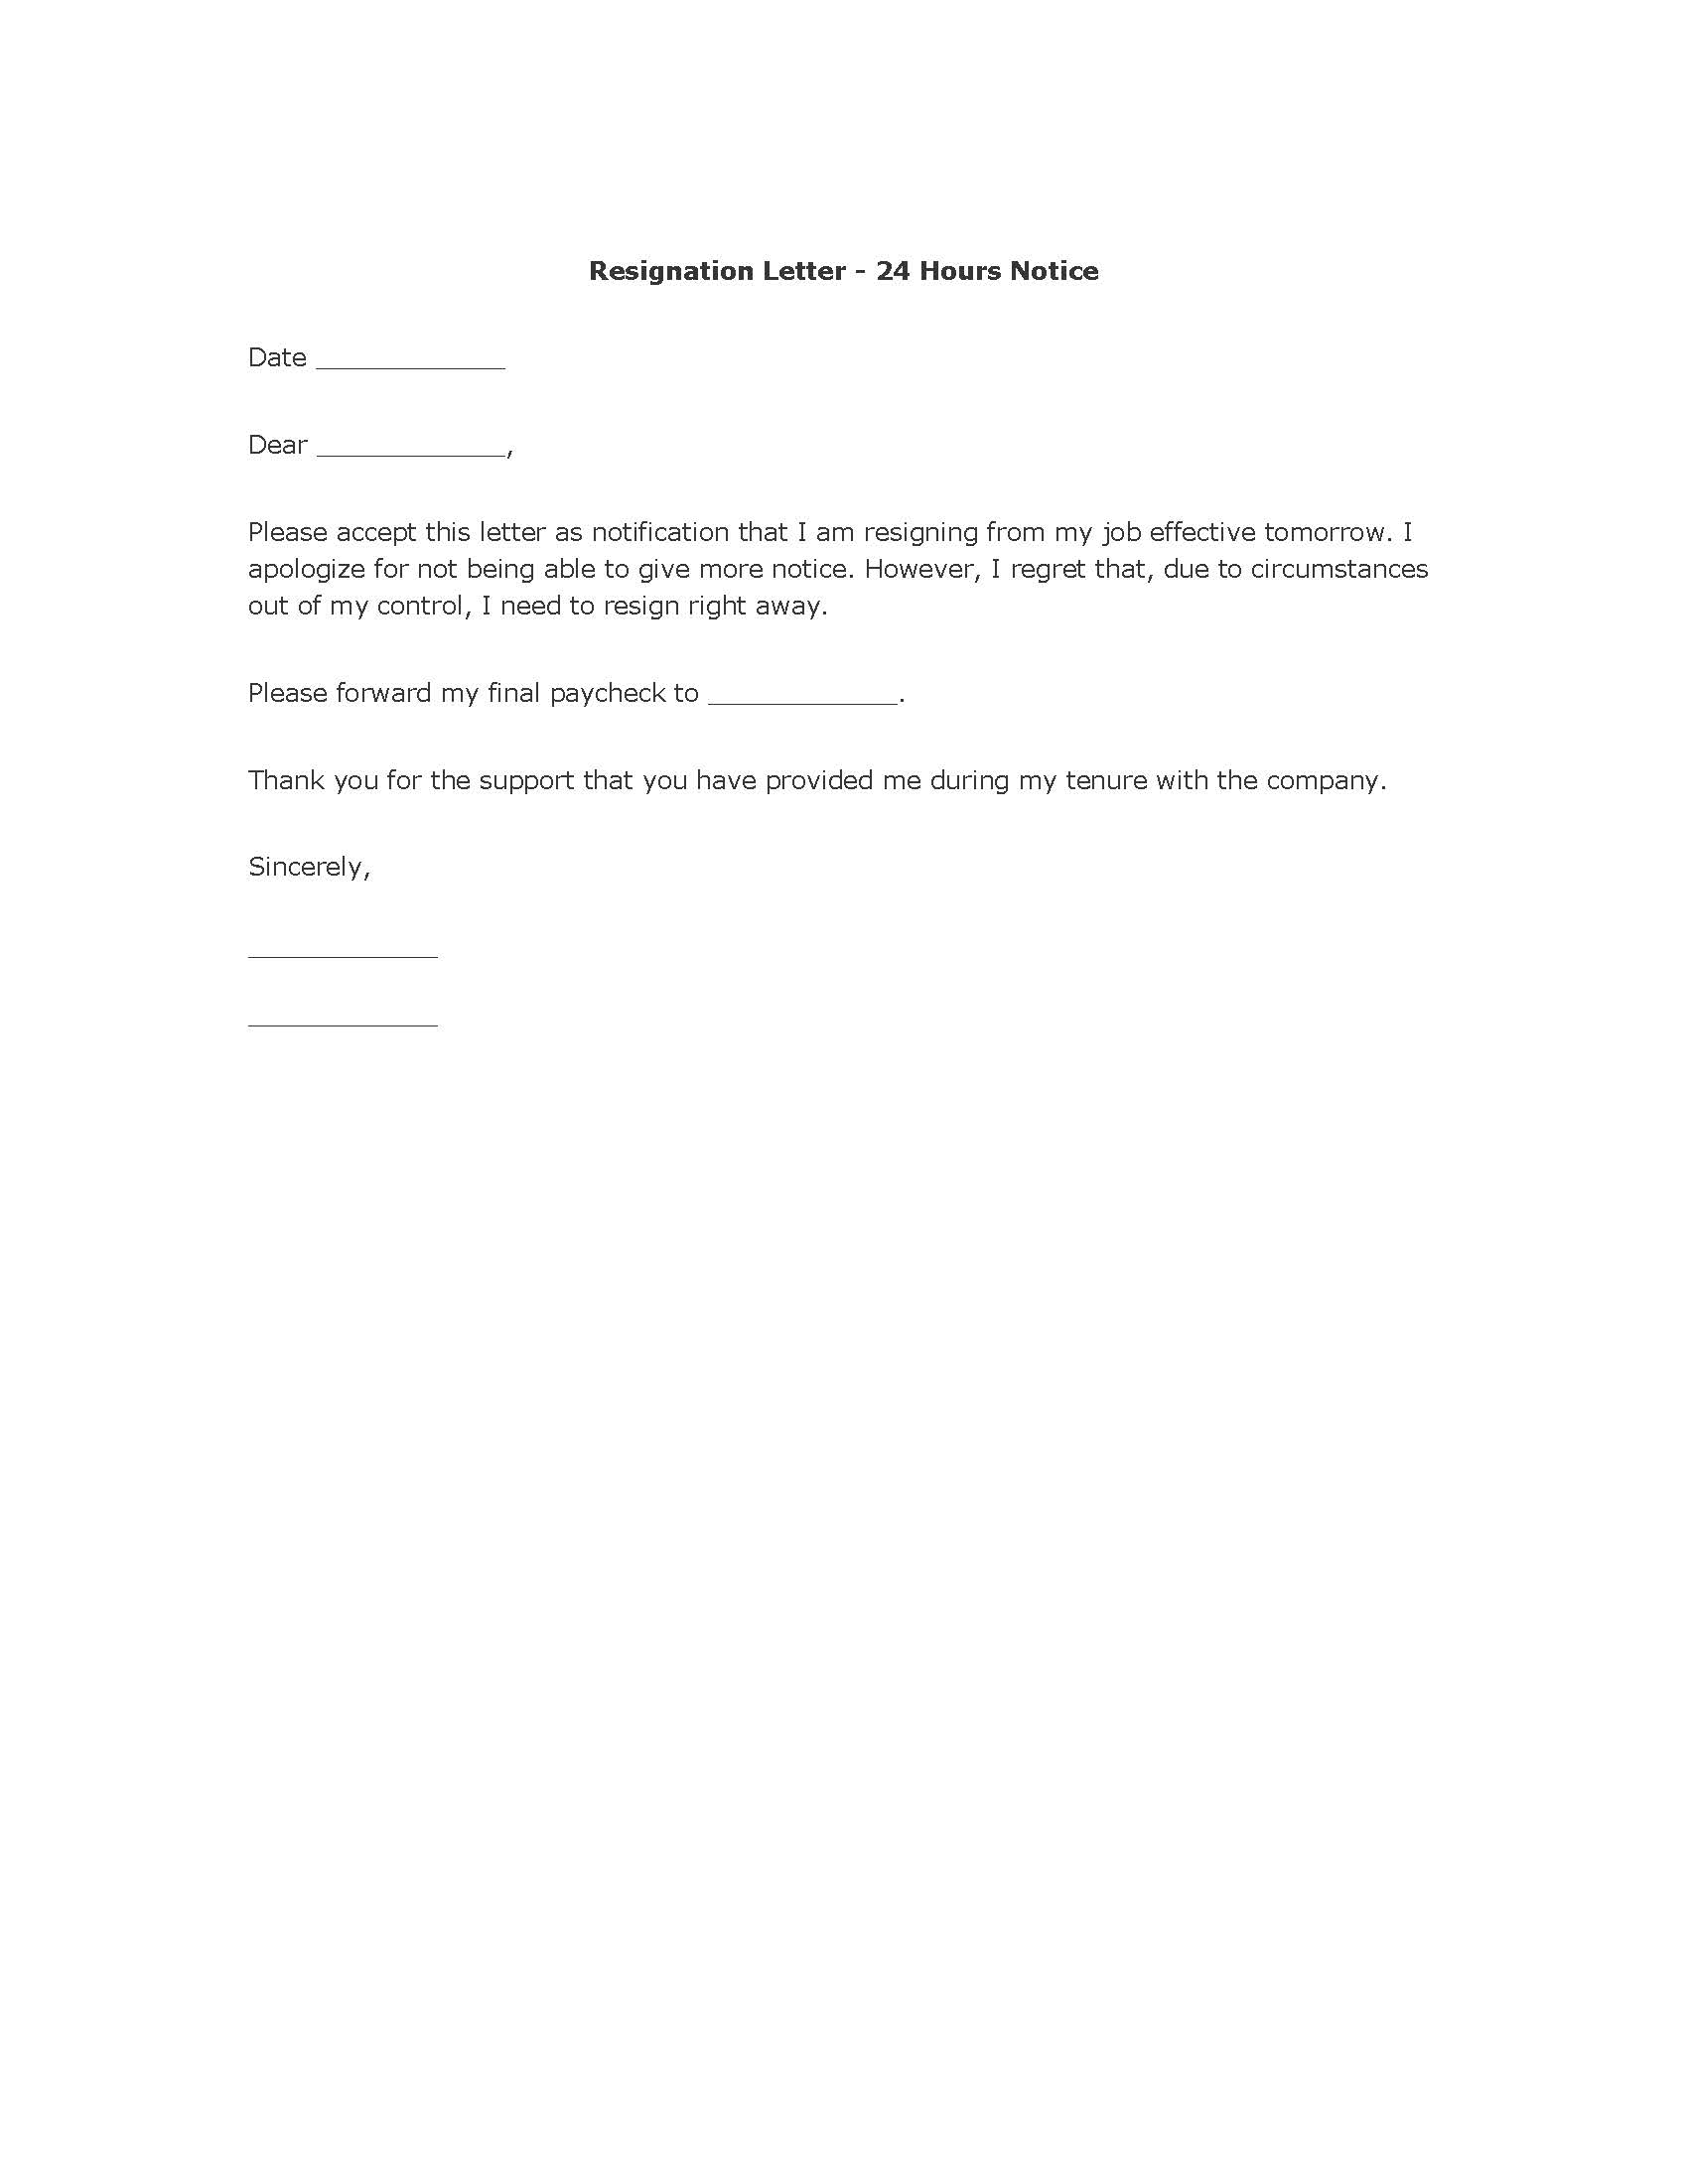 Job resignation letter templates spiritdancerdesigns